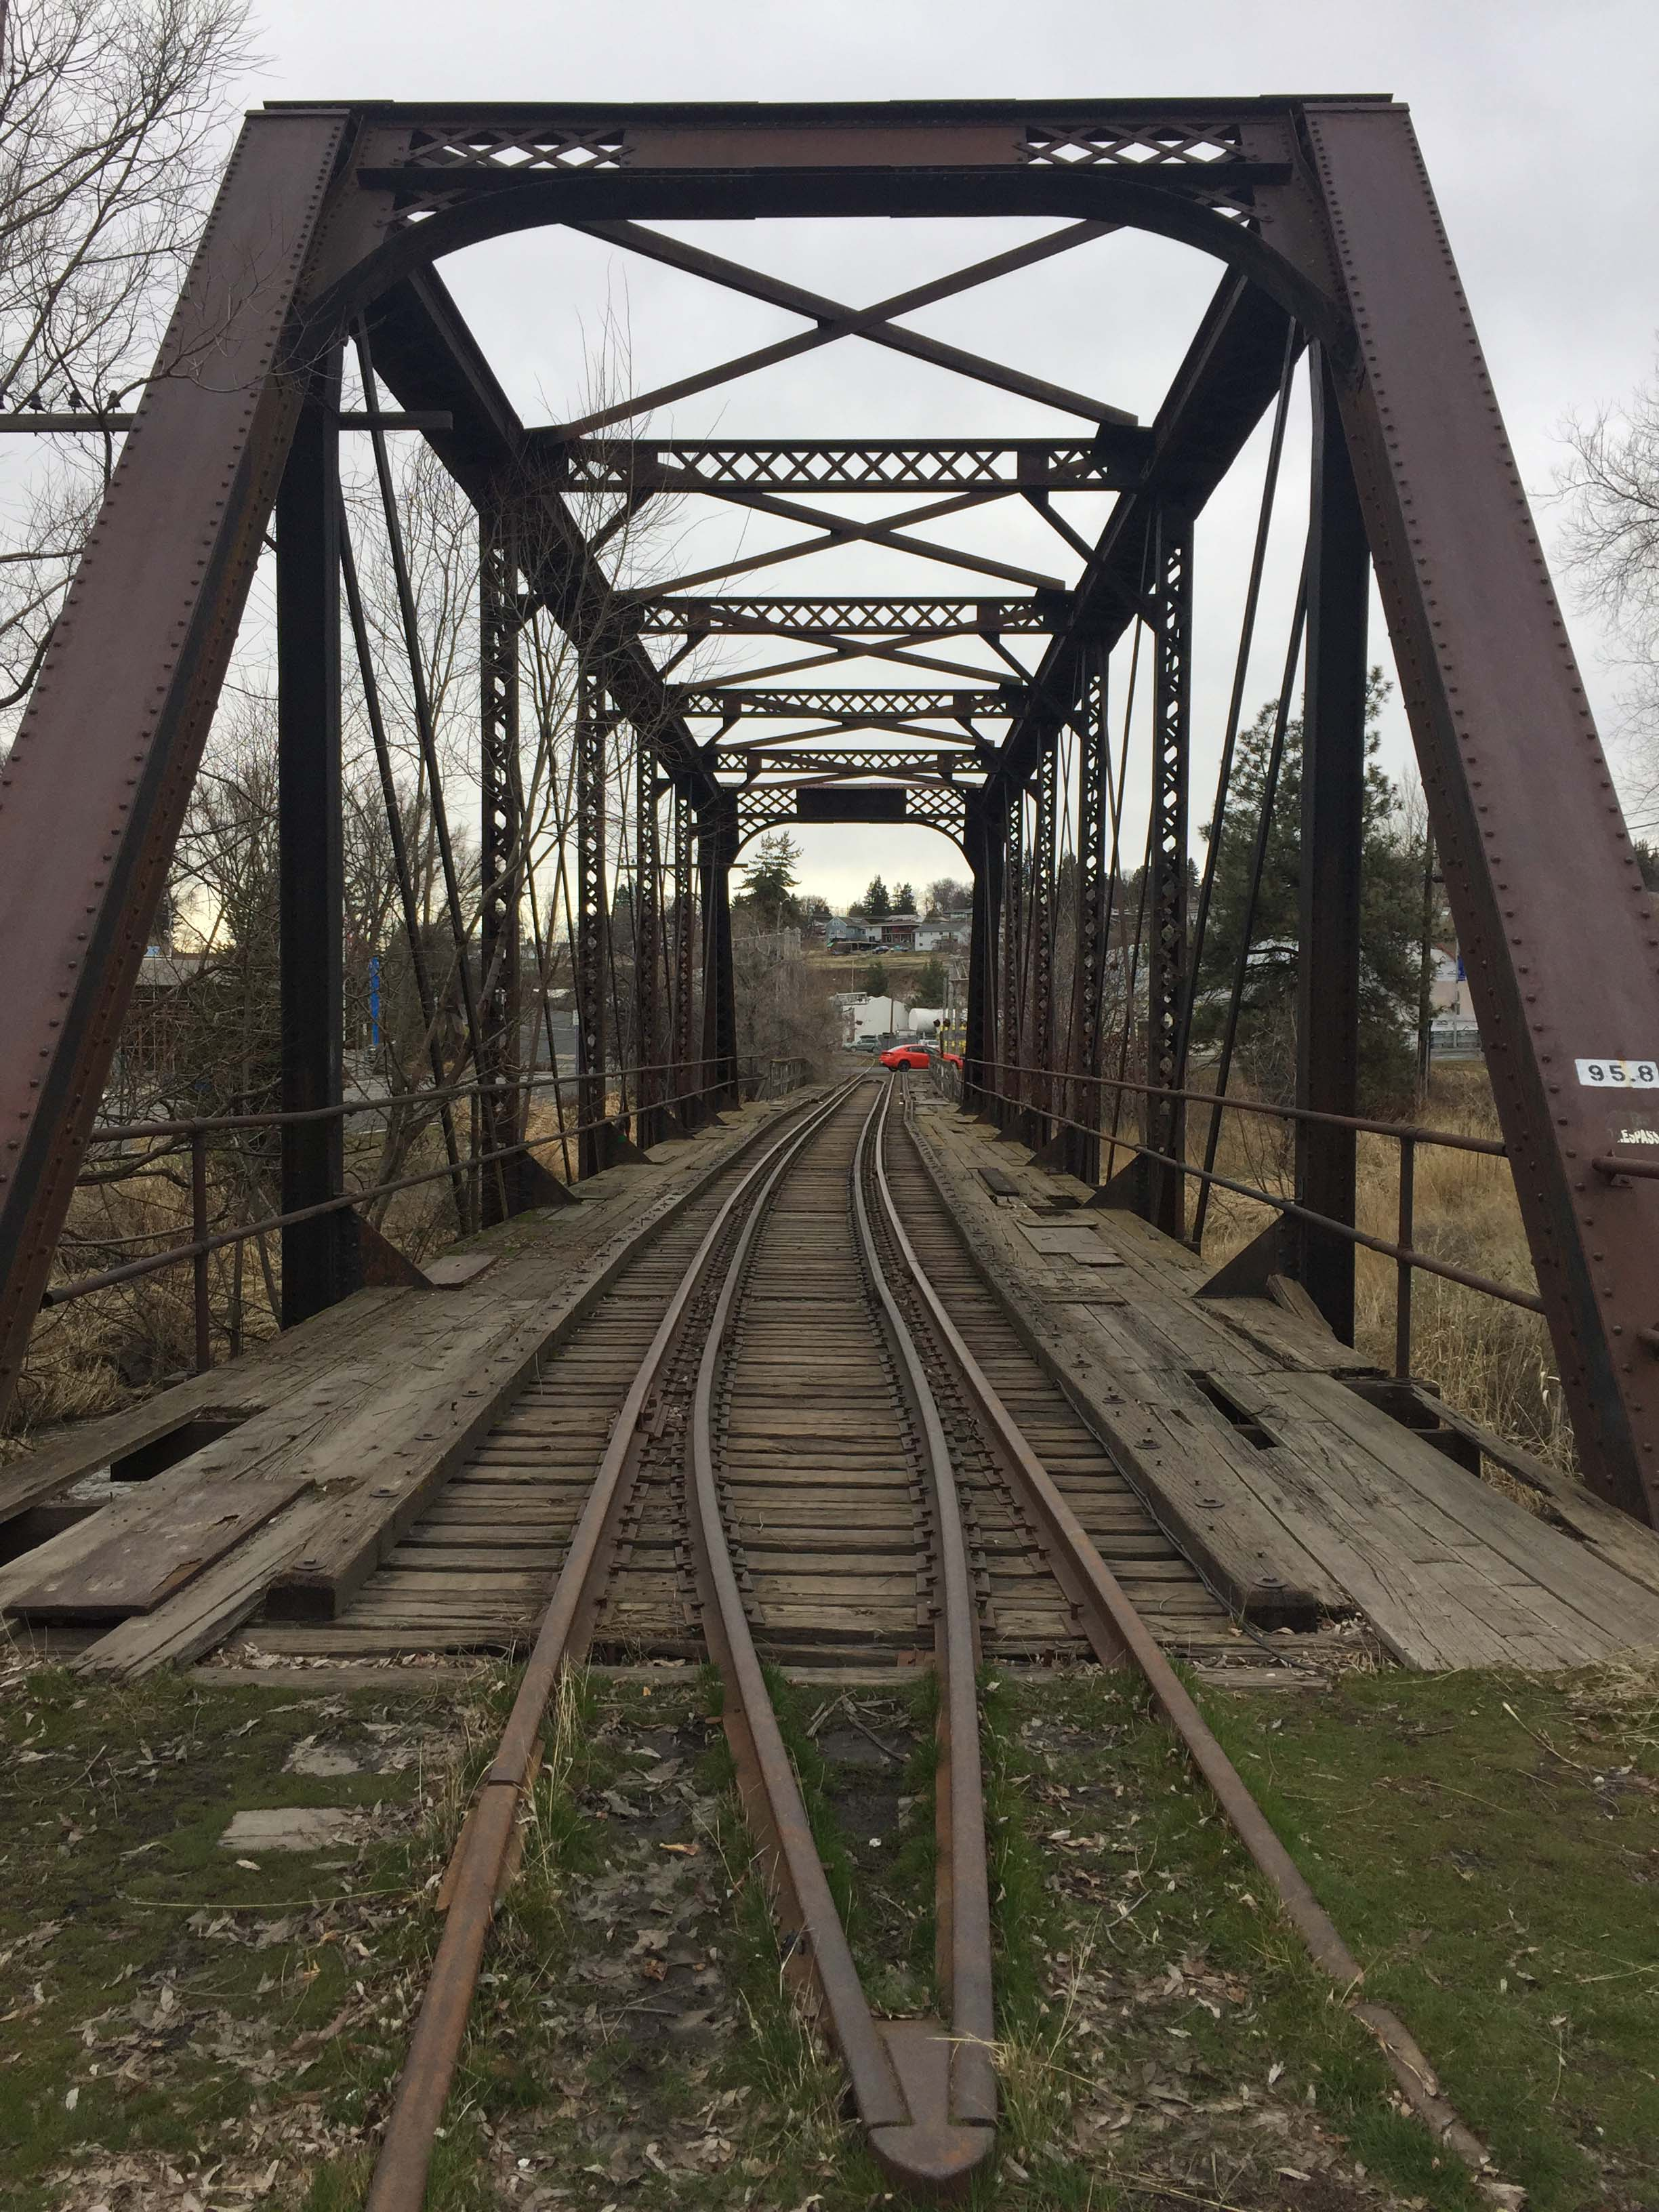 View looking through the bridge and down the tracks, taken February 2018.